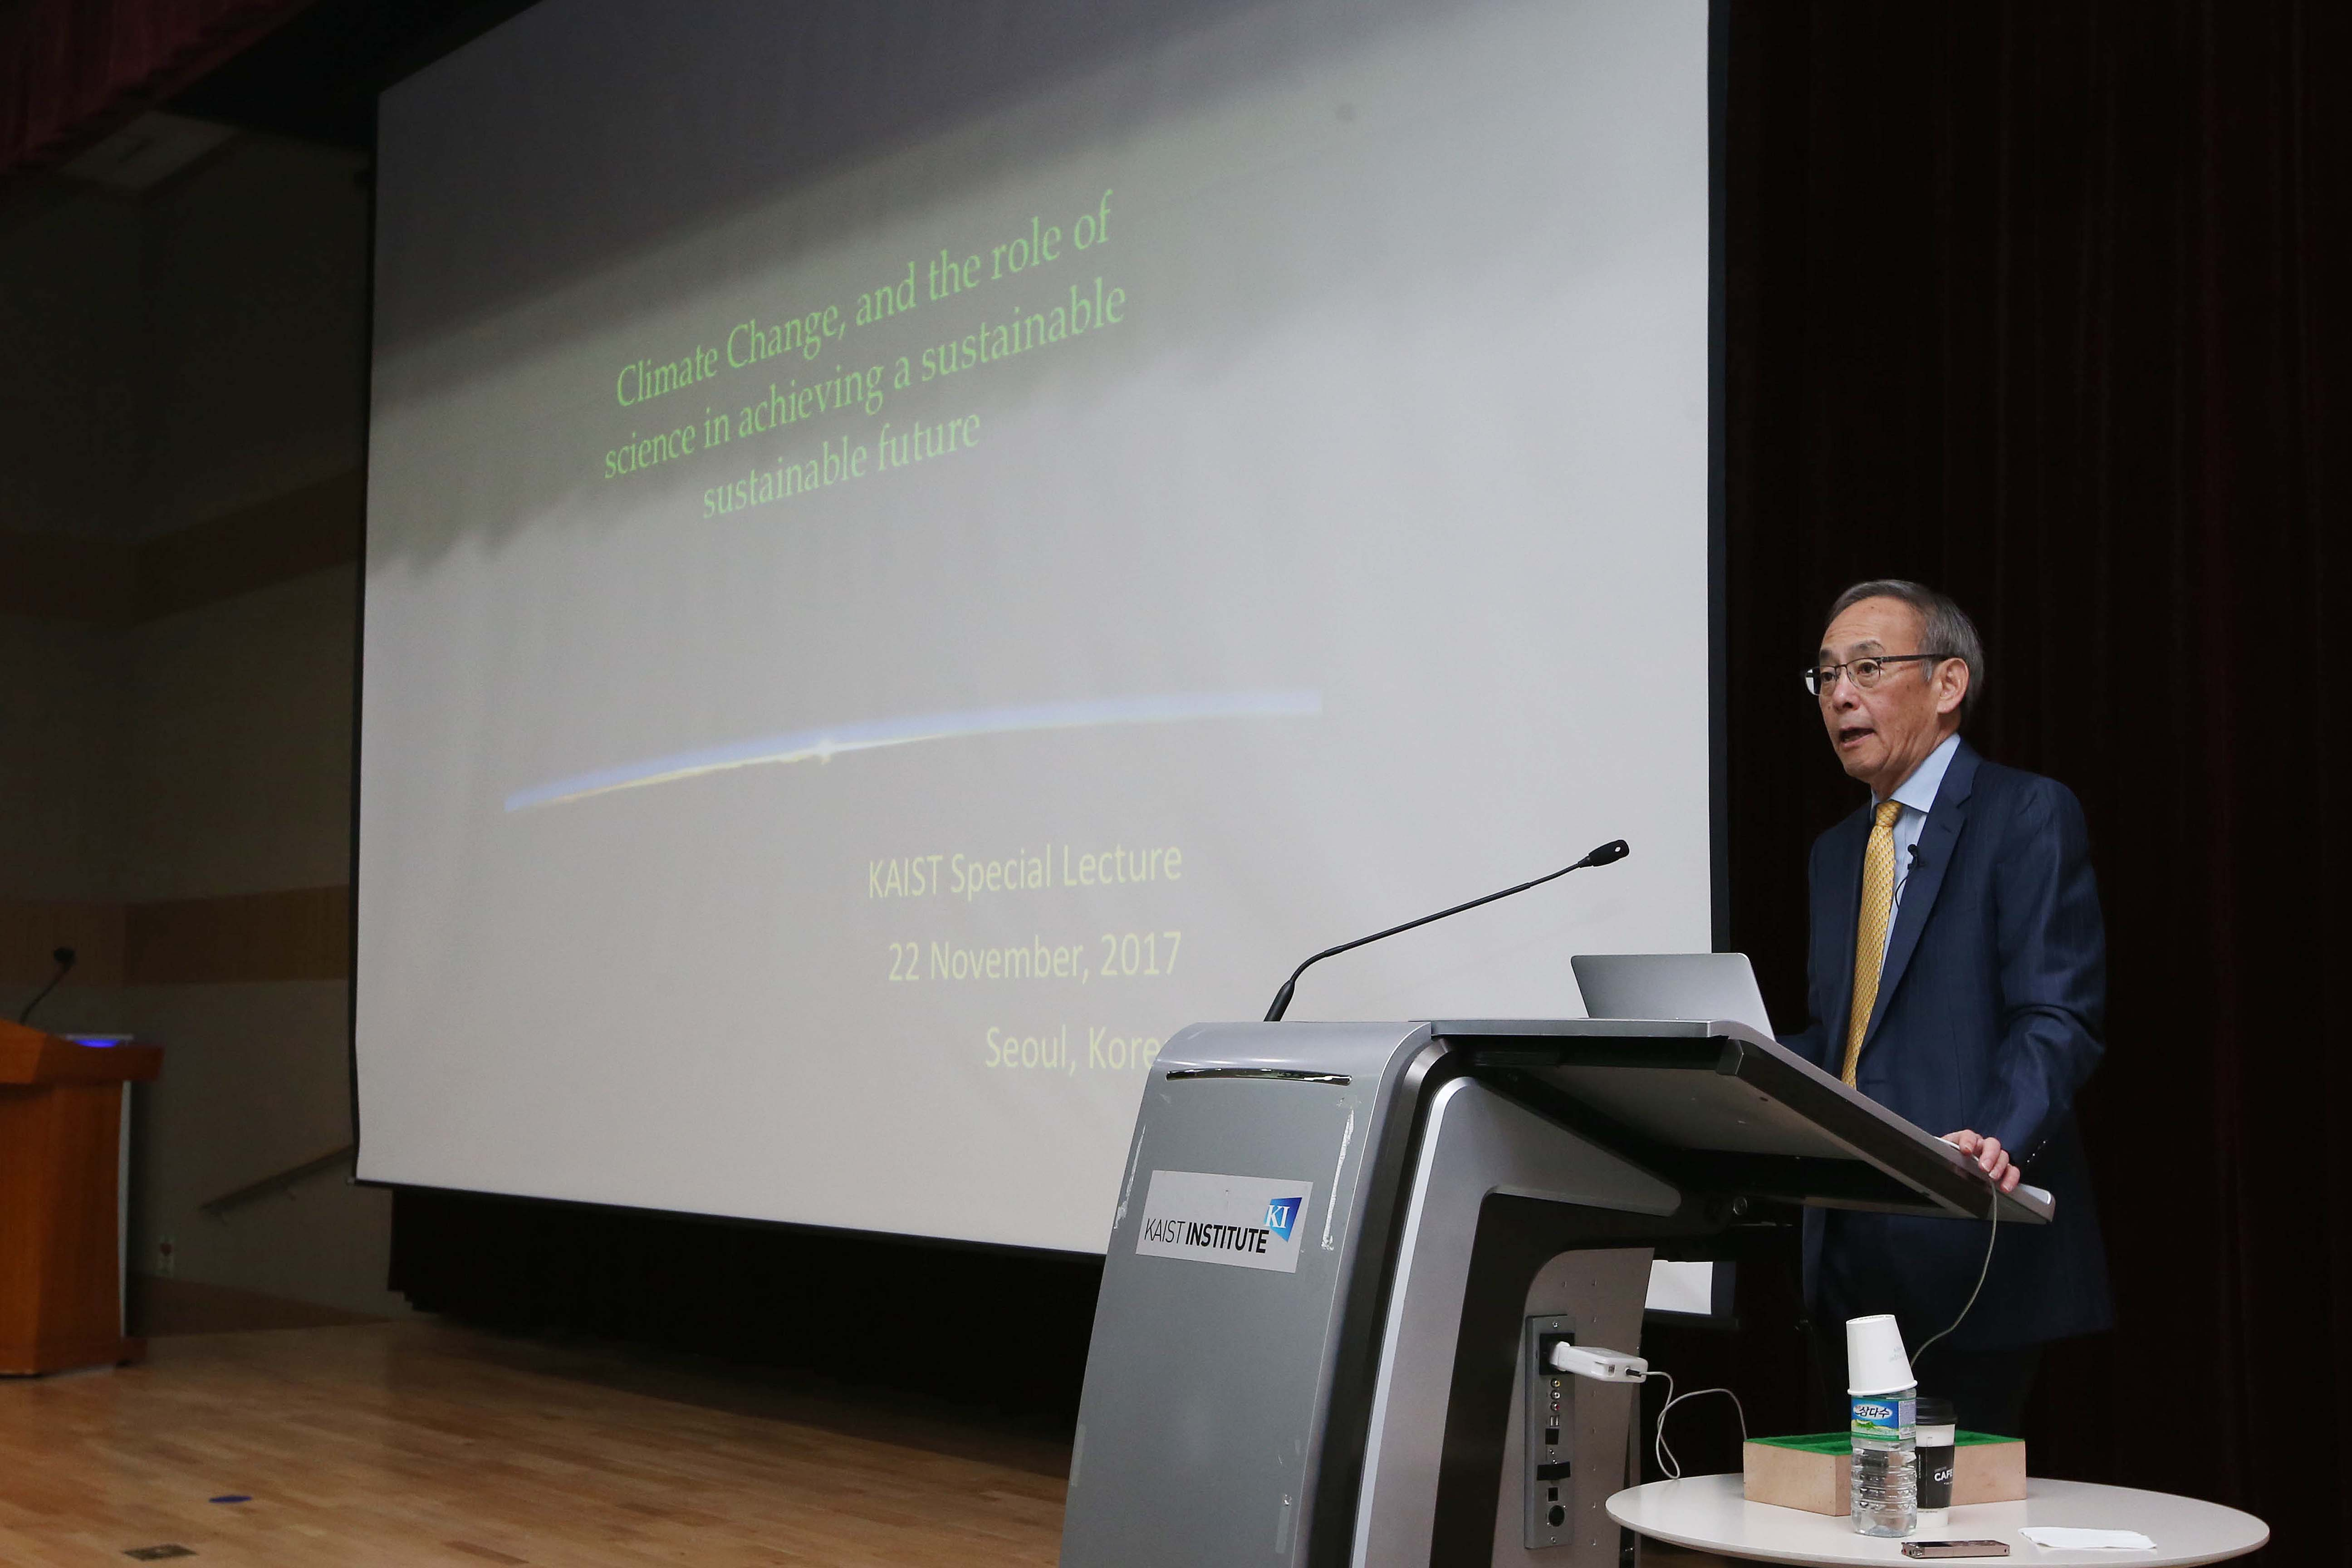 Dr. Steven Chu Talks on Sustainable Energy Policy at KAIST 이미지1